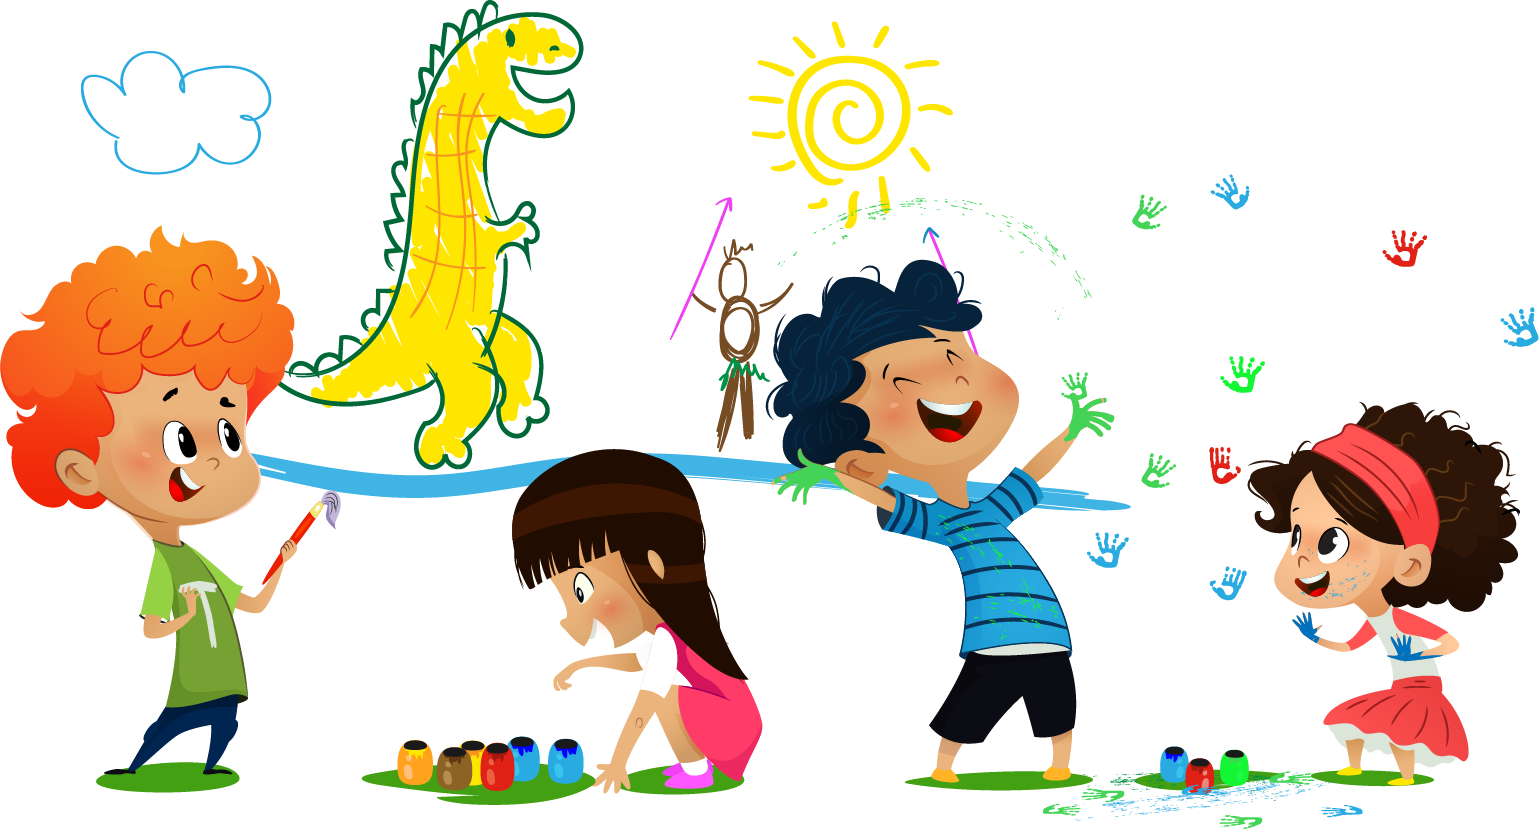 Fun Kid S Artwork Cool Crafts And Online Games The Kid S